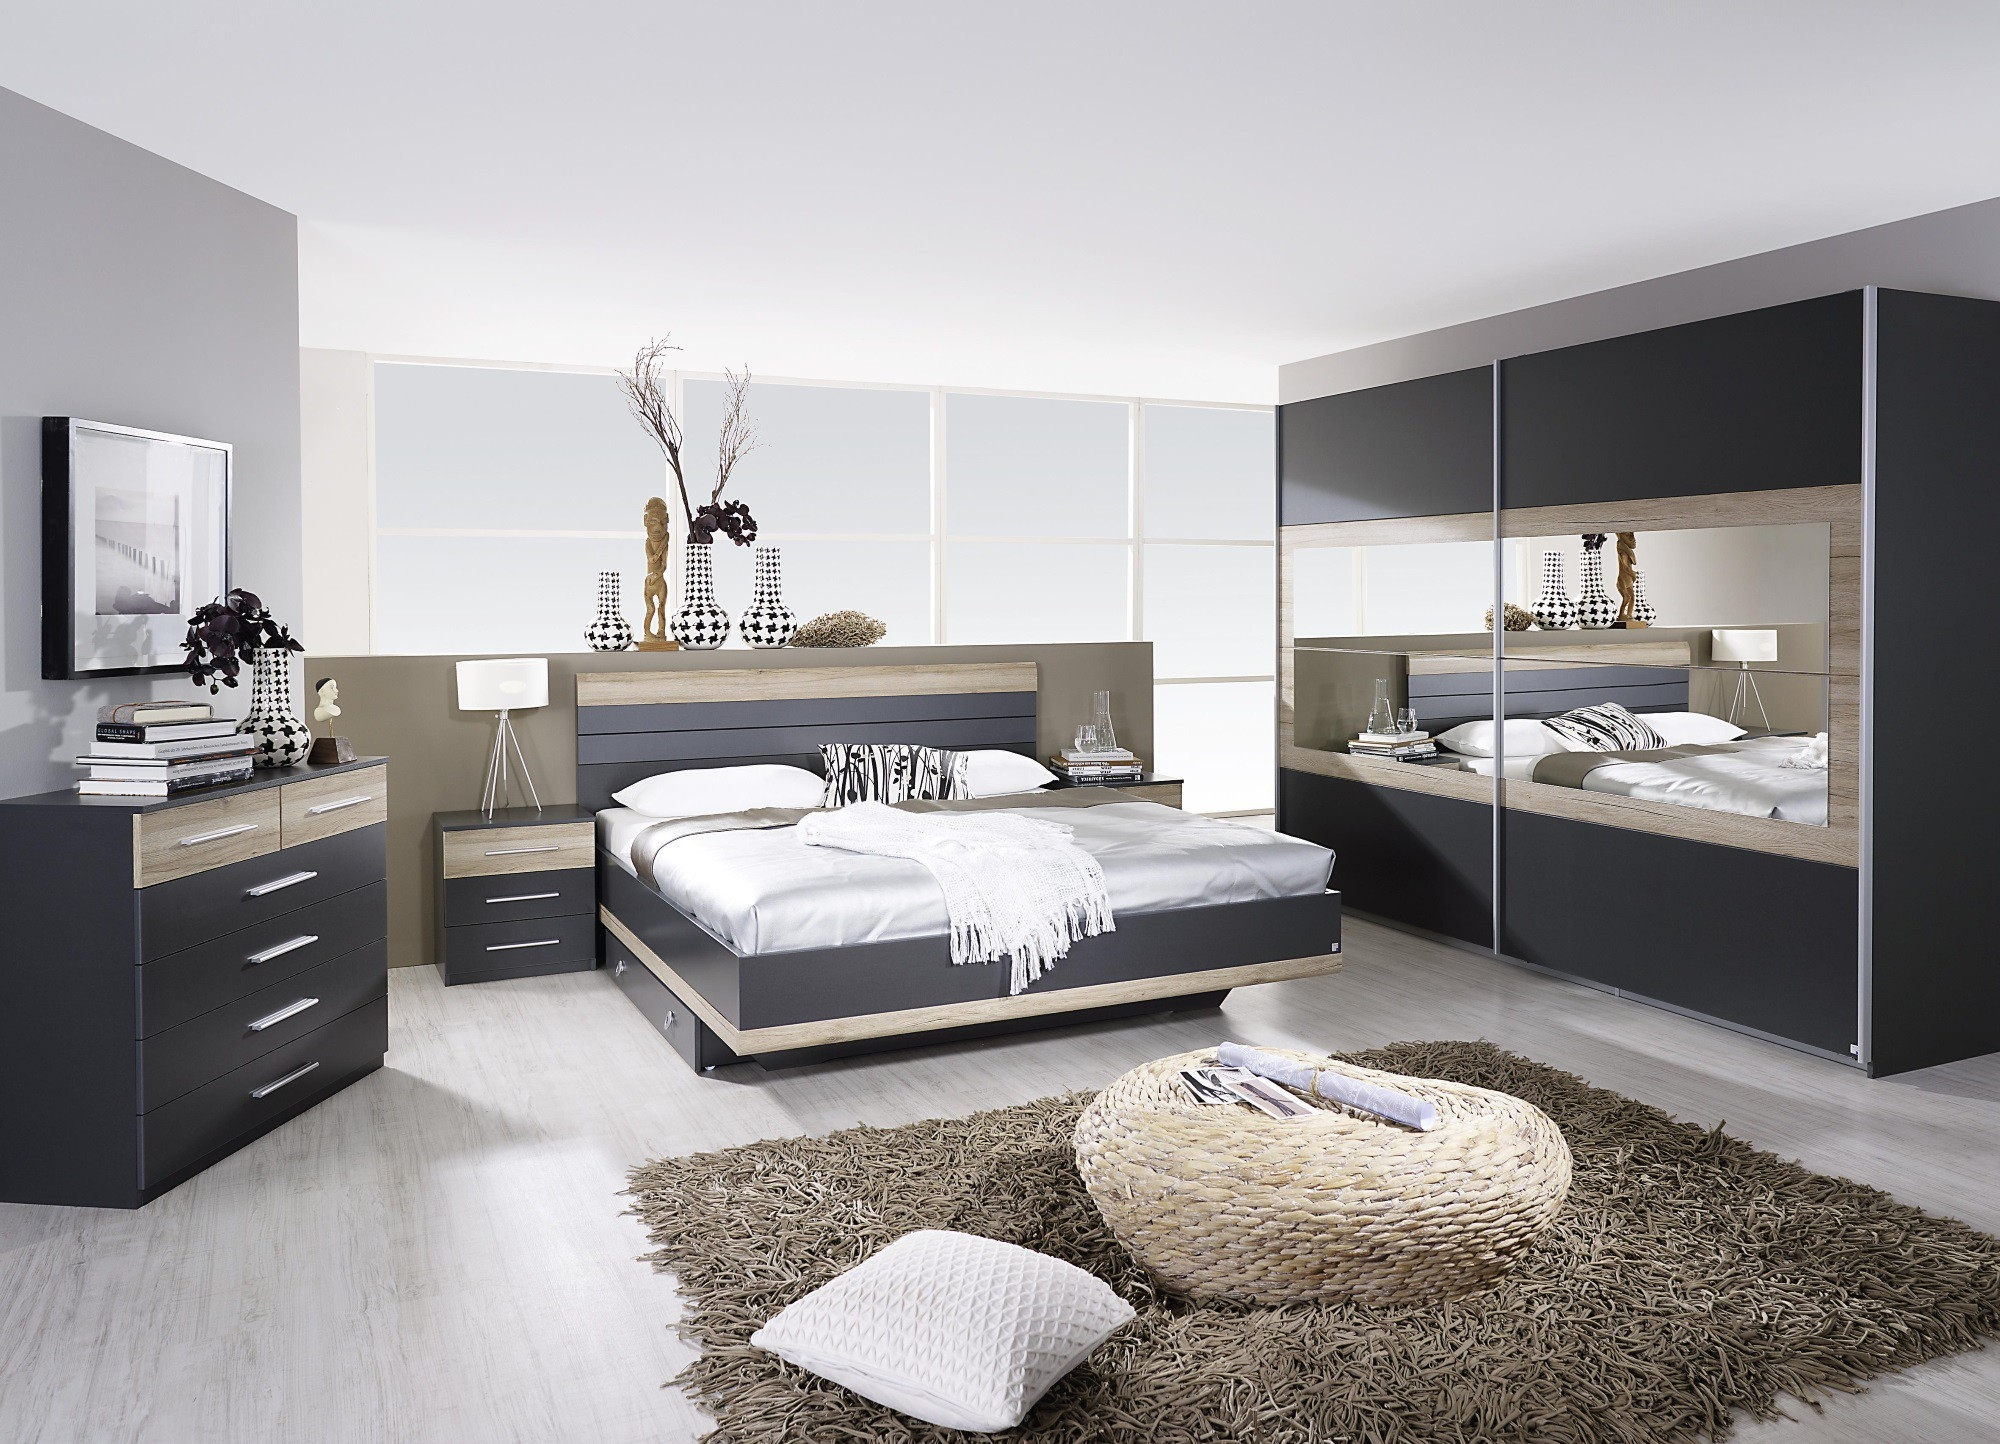 Chambre adulte compl te contemporaine gris ch ne clair for Chambre complete adulte suisse